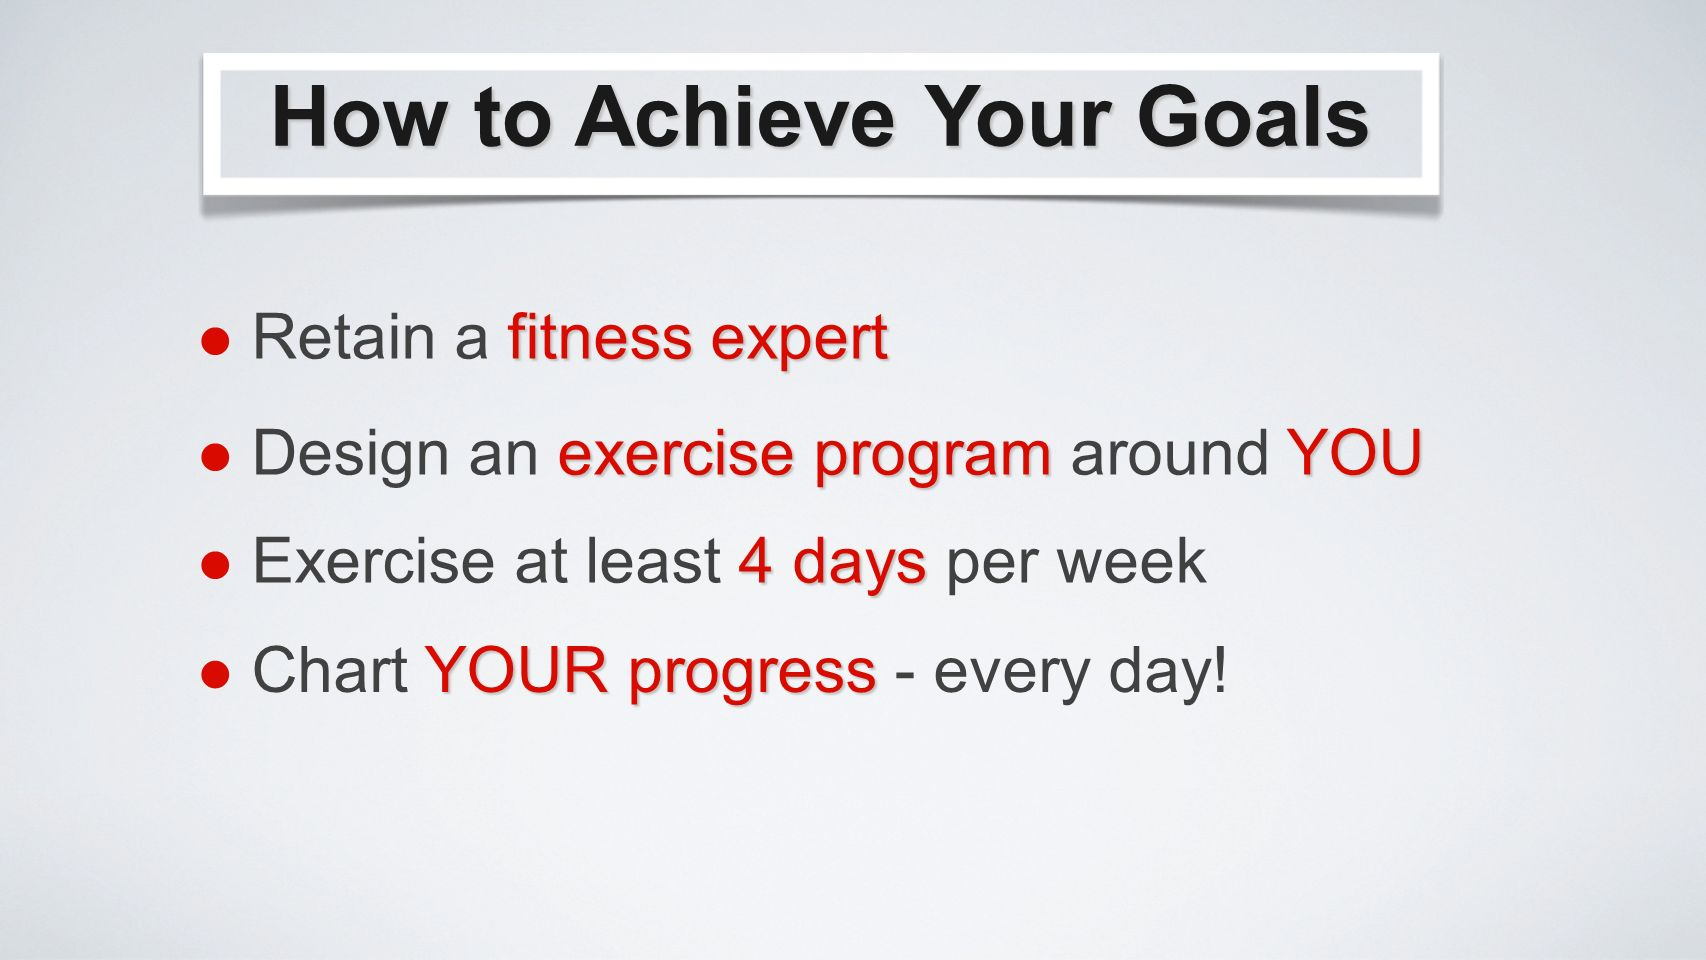 How to Achieve Your Goals fitness expert Retain a fitness expert exercise programYOU Design an exercise program around YOU 4 days Exercise at least 4 days per week YOUR progress Chart YOUR progress - every day!